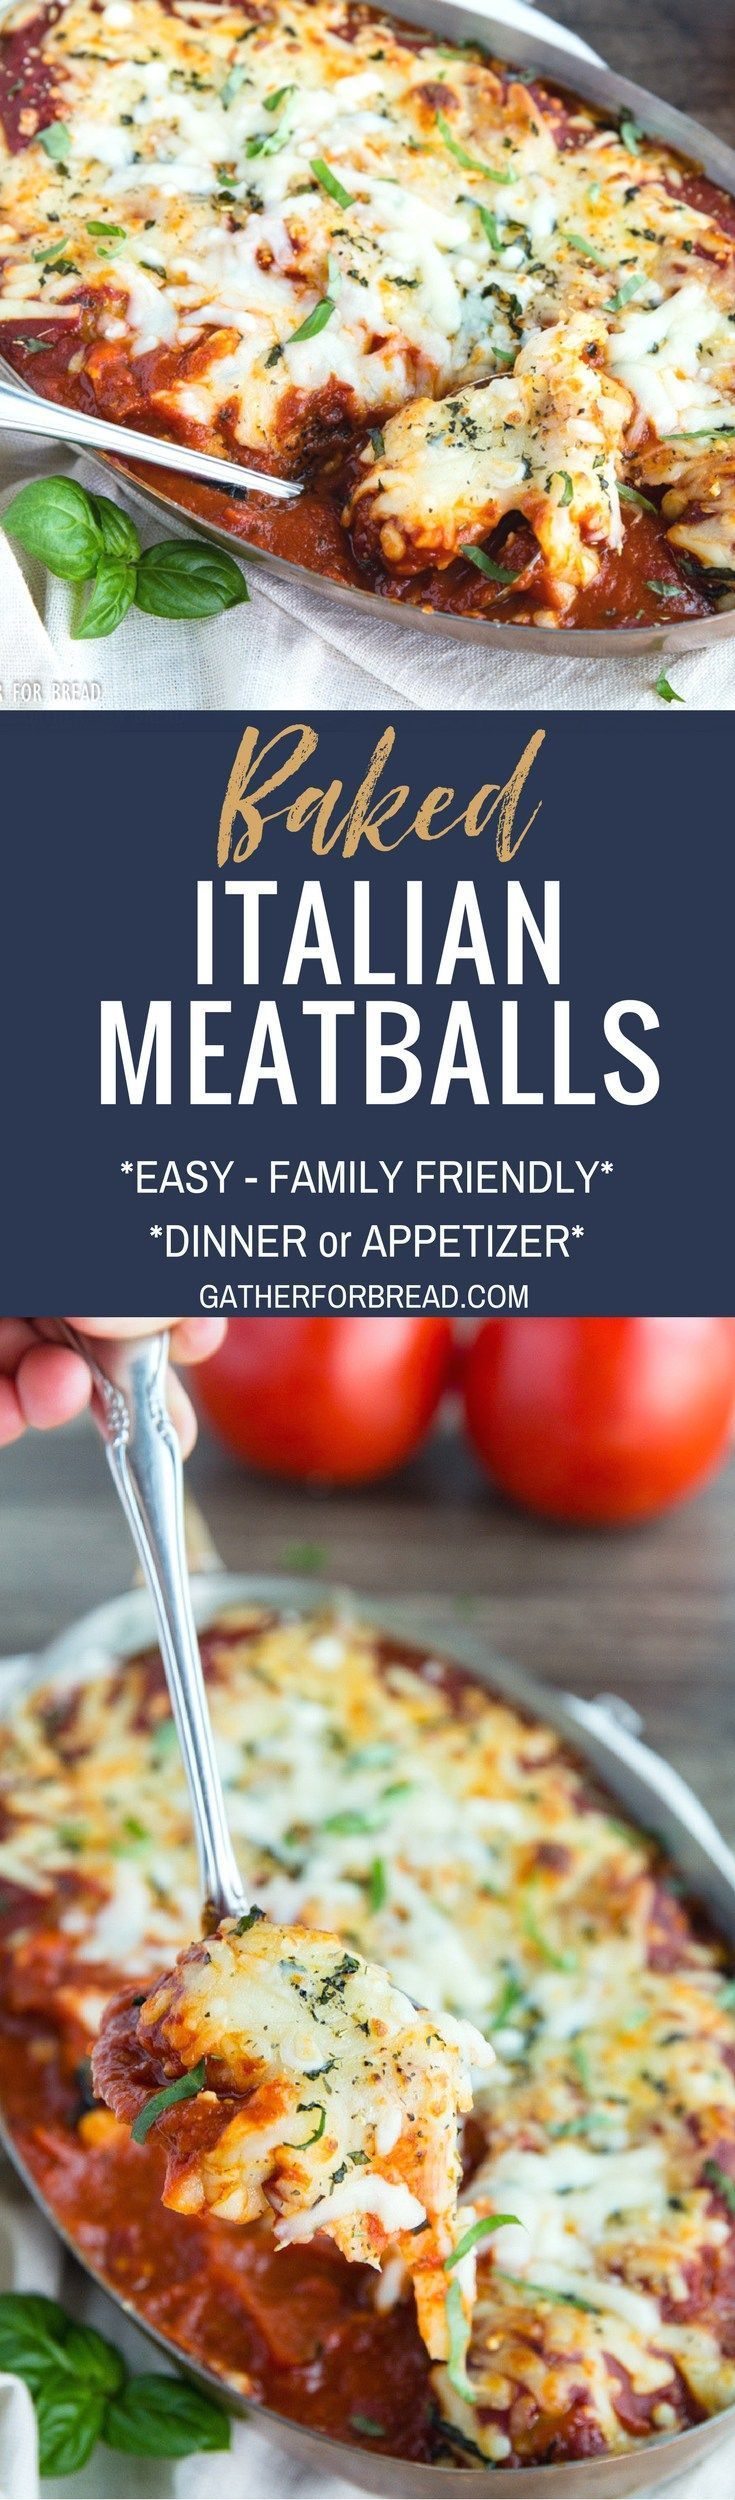 Baked Italian Meatballs - AD Cheesy Chicken Meatballs in a red pasta sauce.